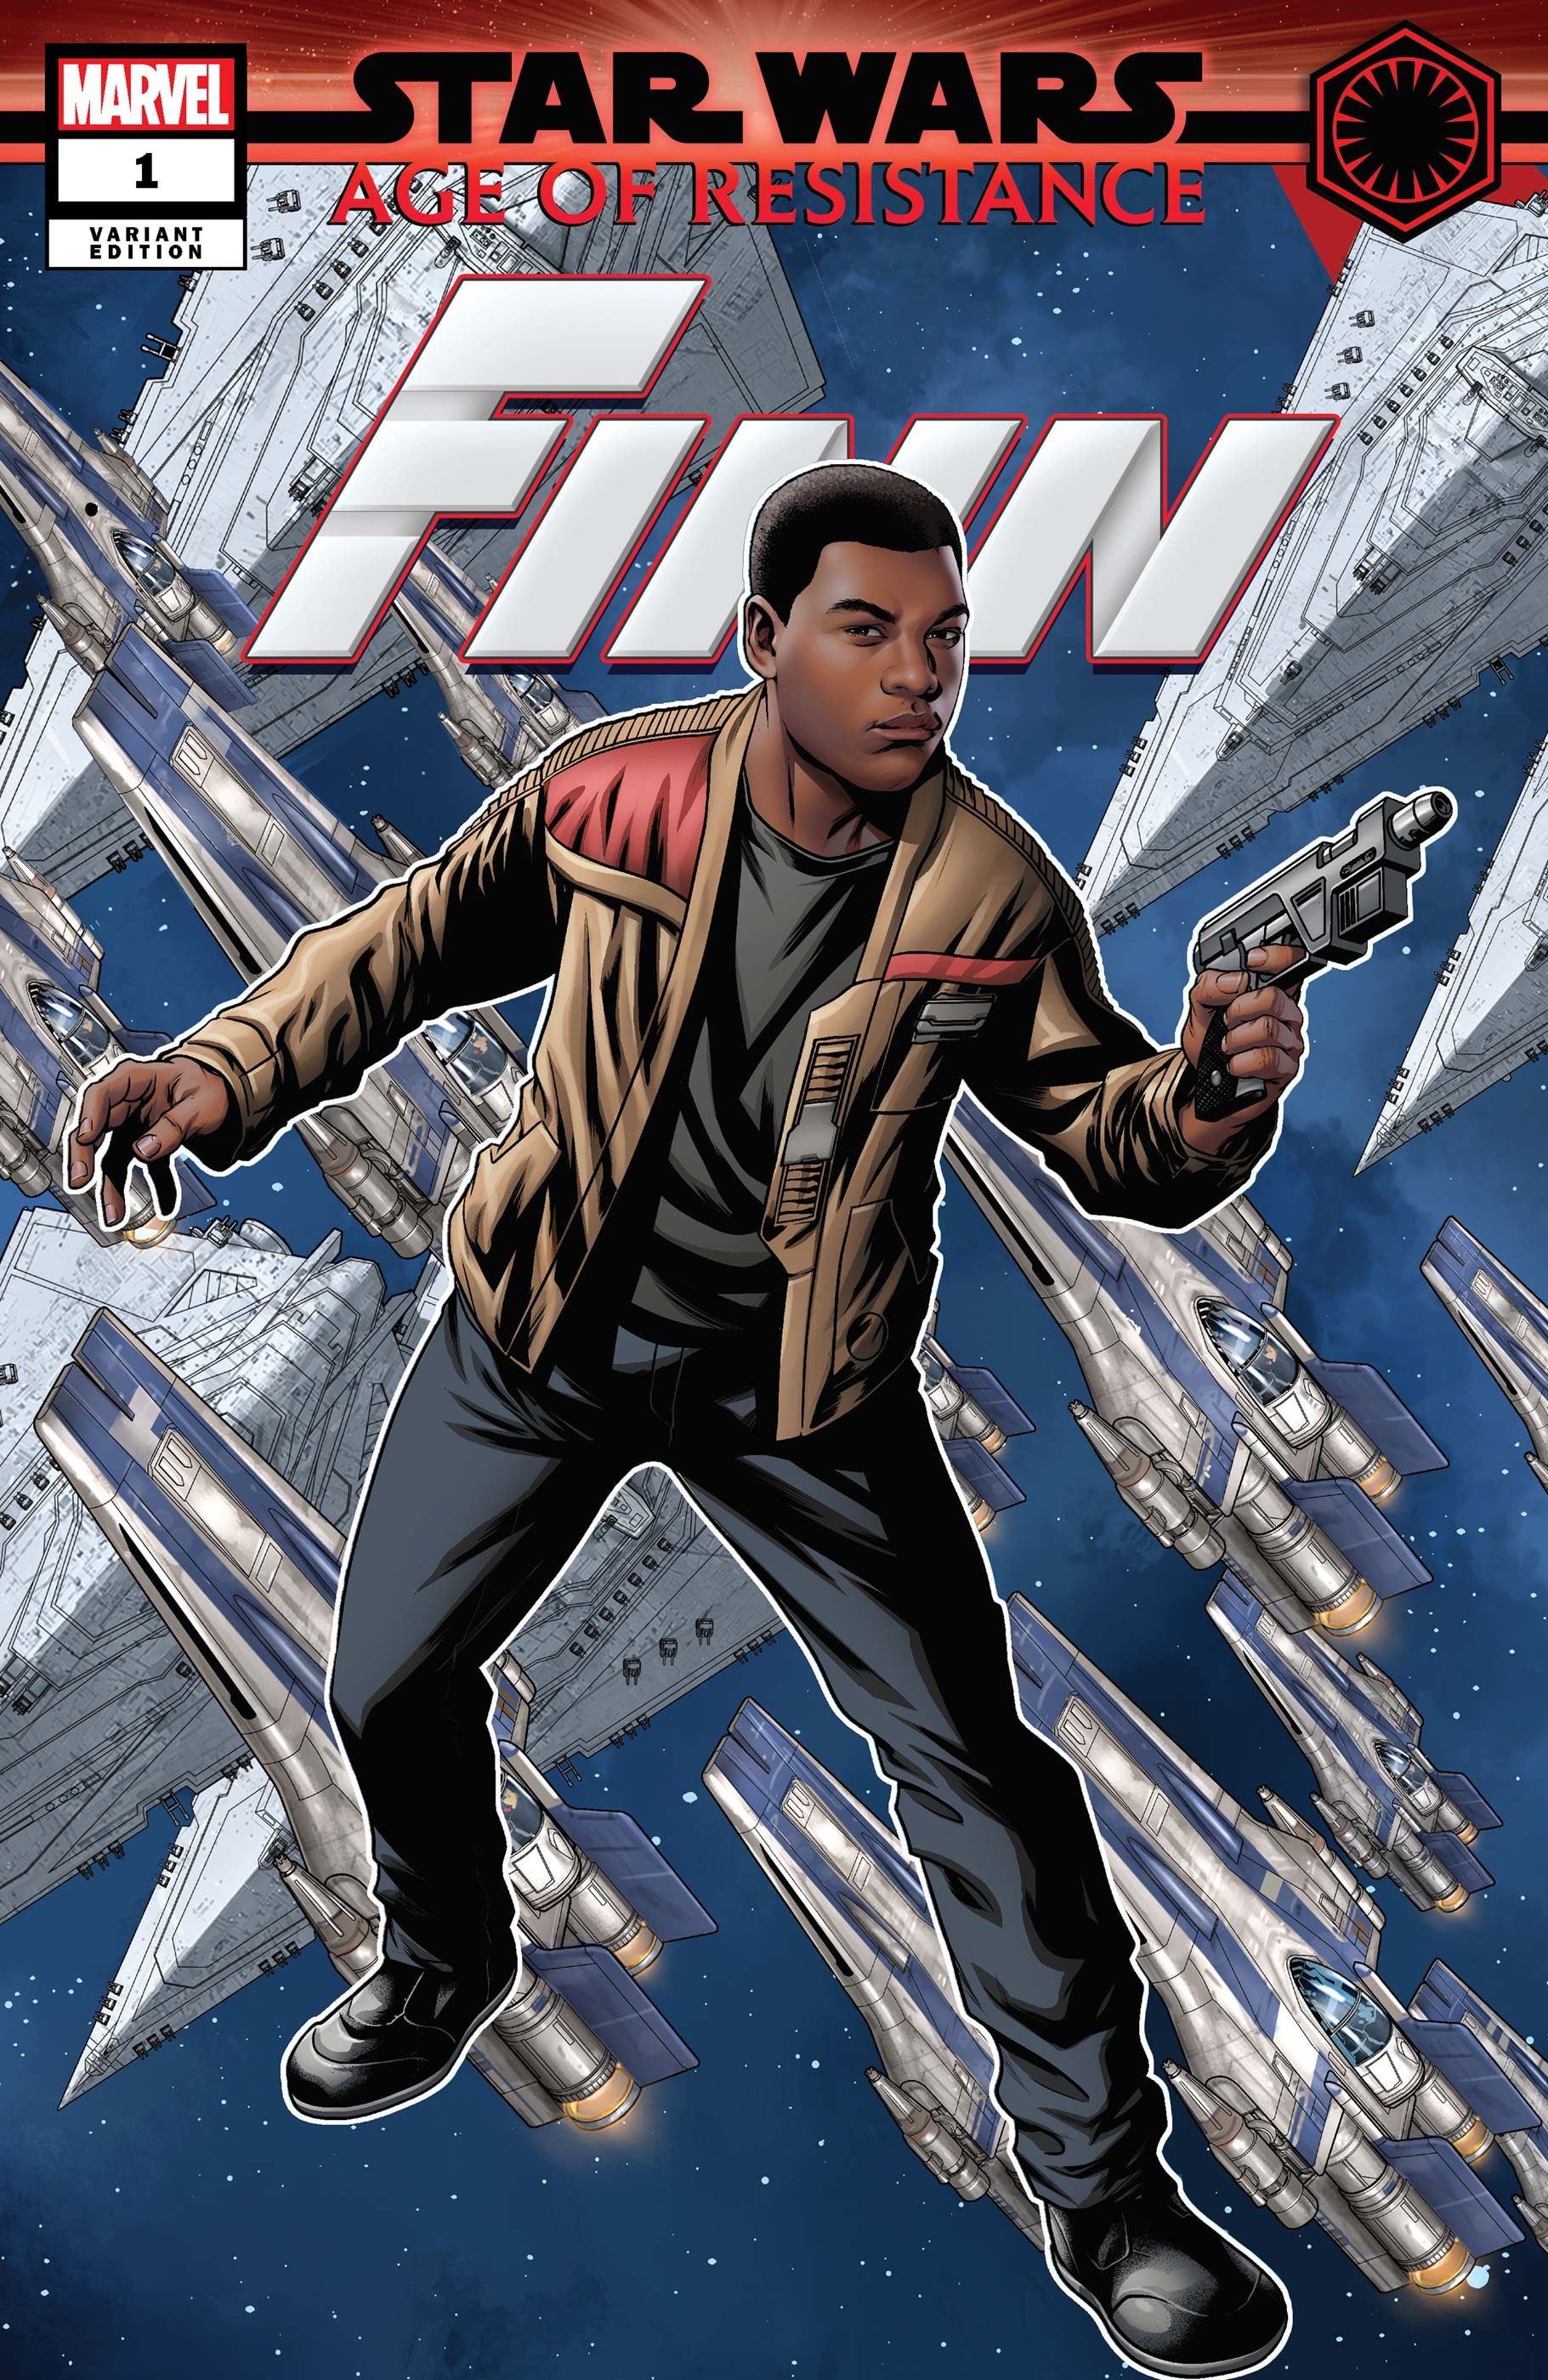 Star Wars: Age Of Resistance - Finn (2019) #1 (Variant)